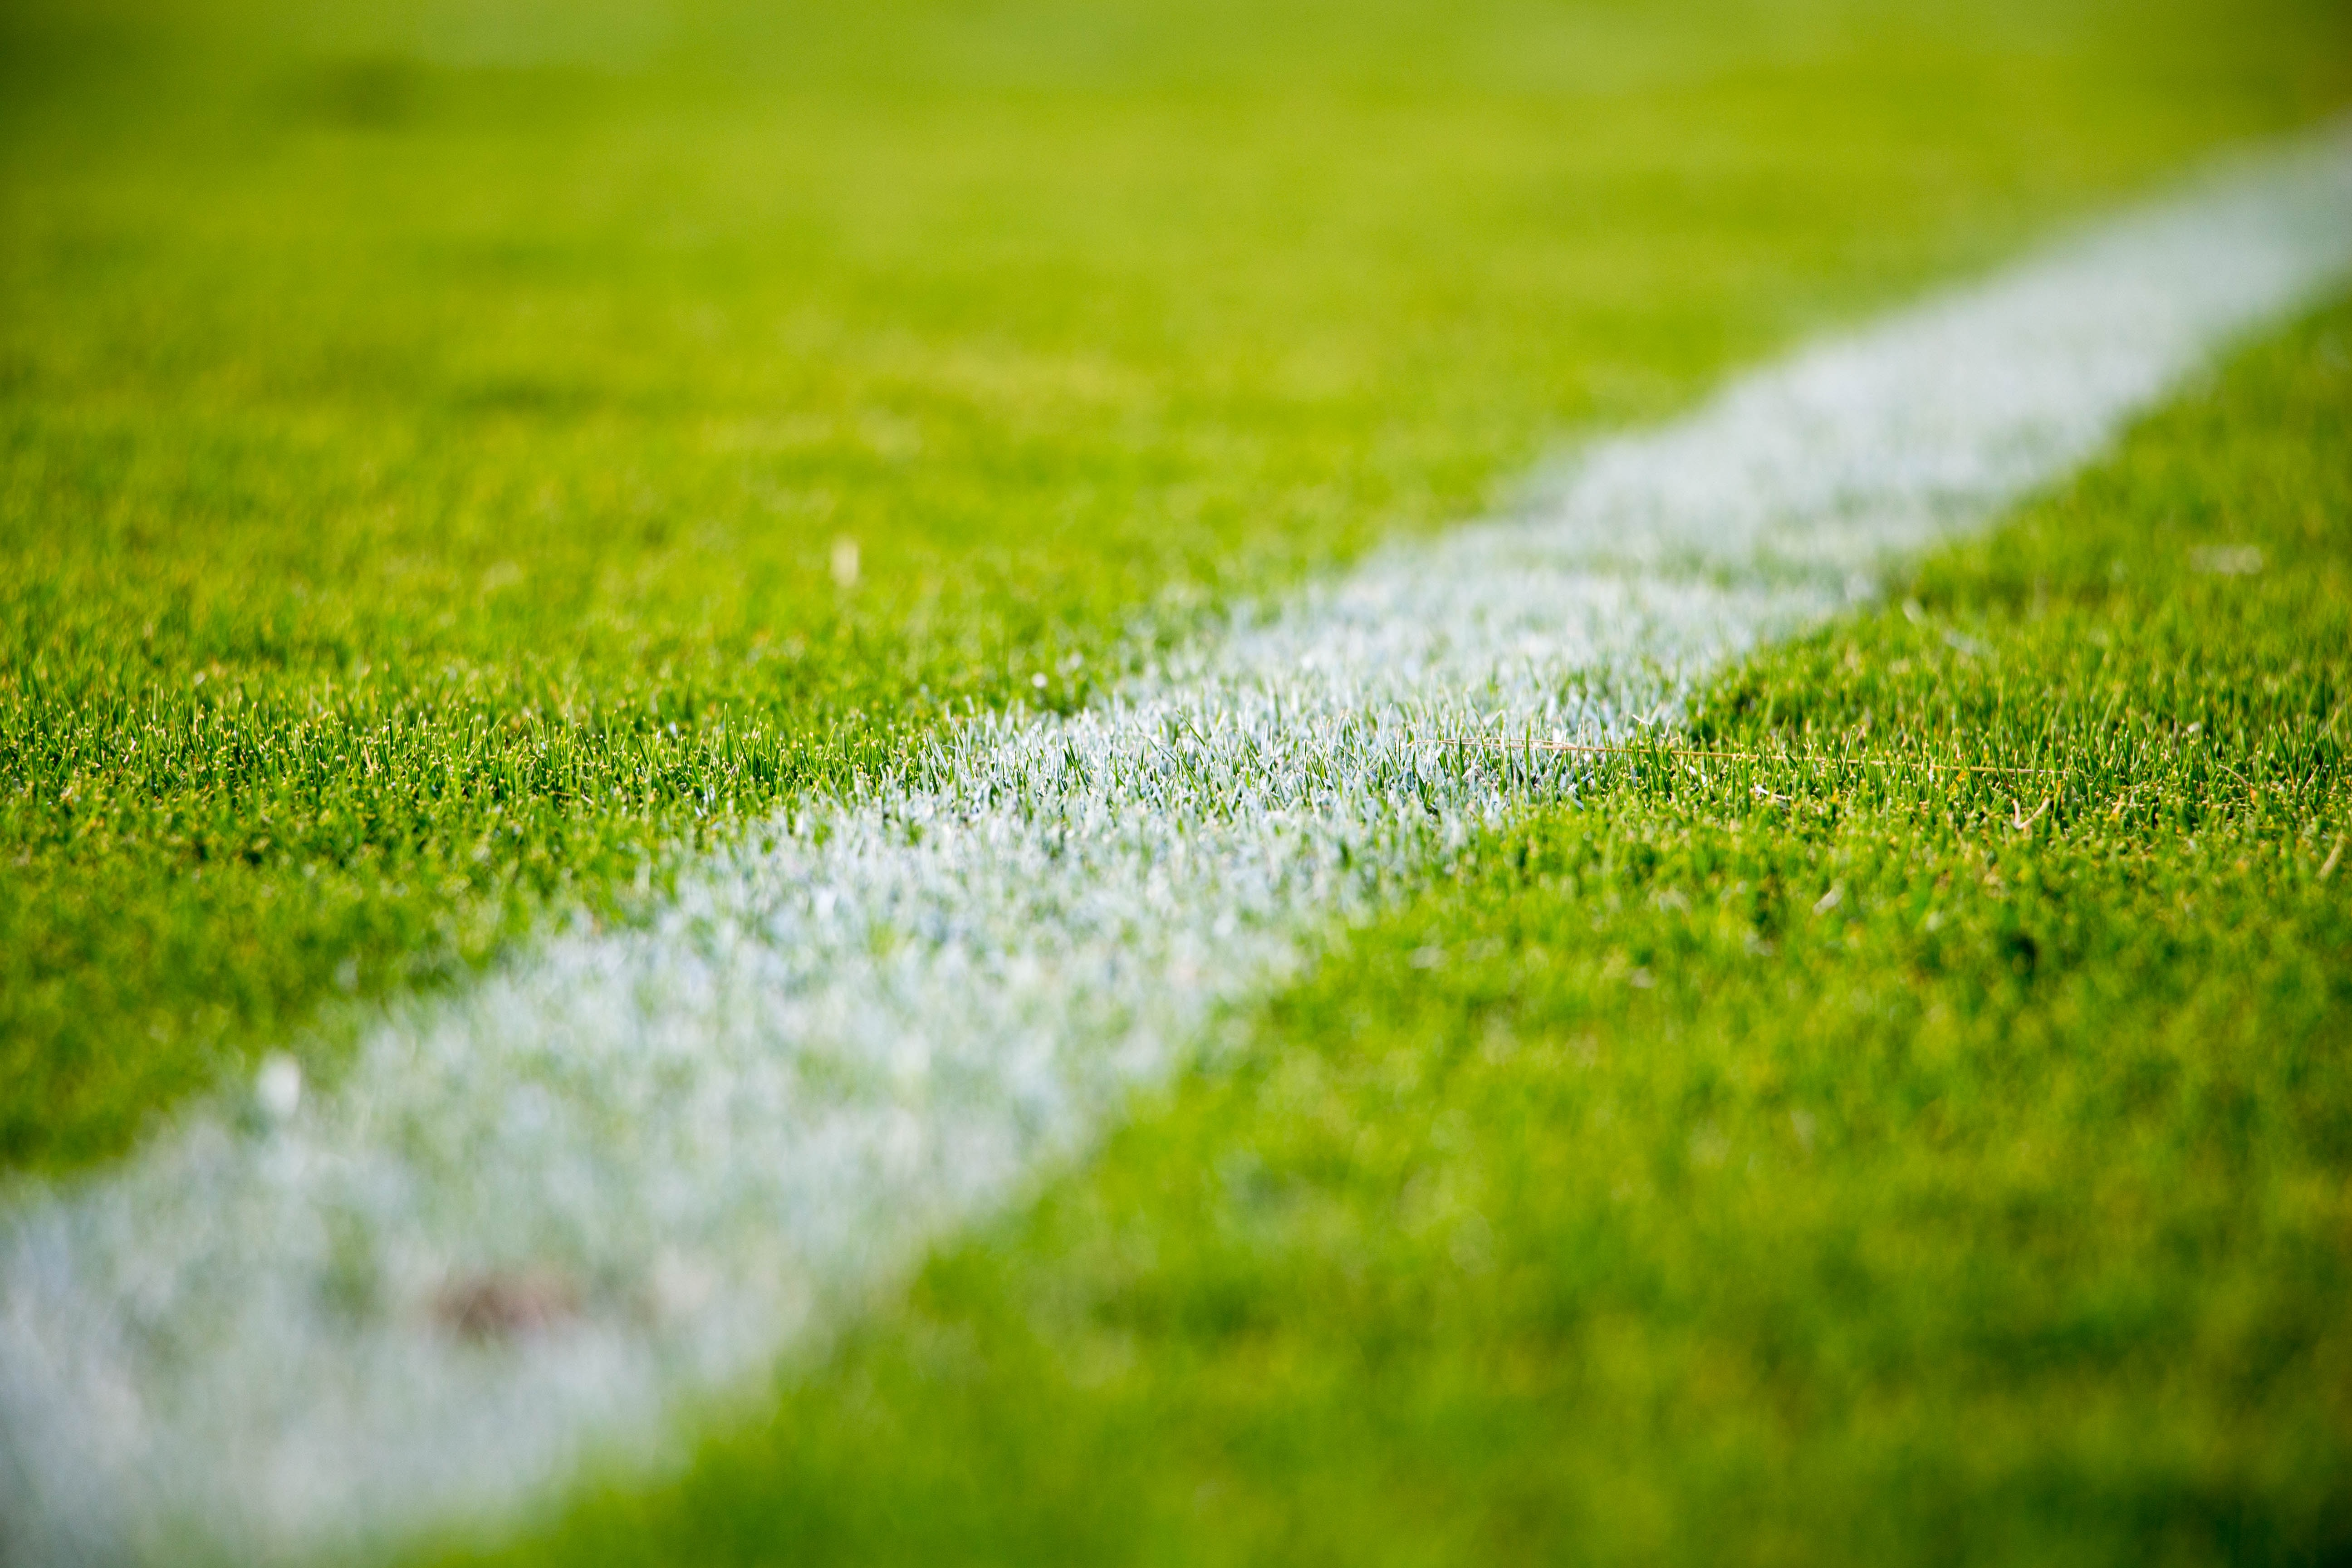 close-up of a white line on a football pitch